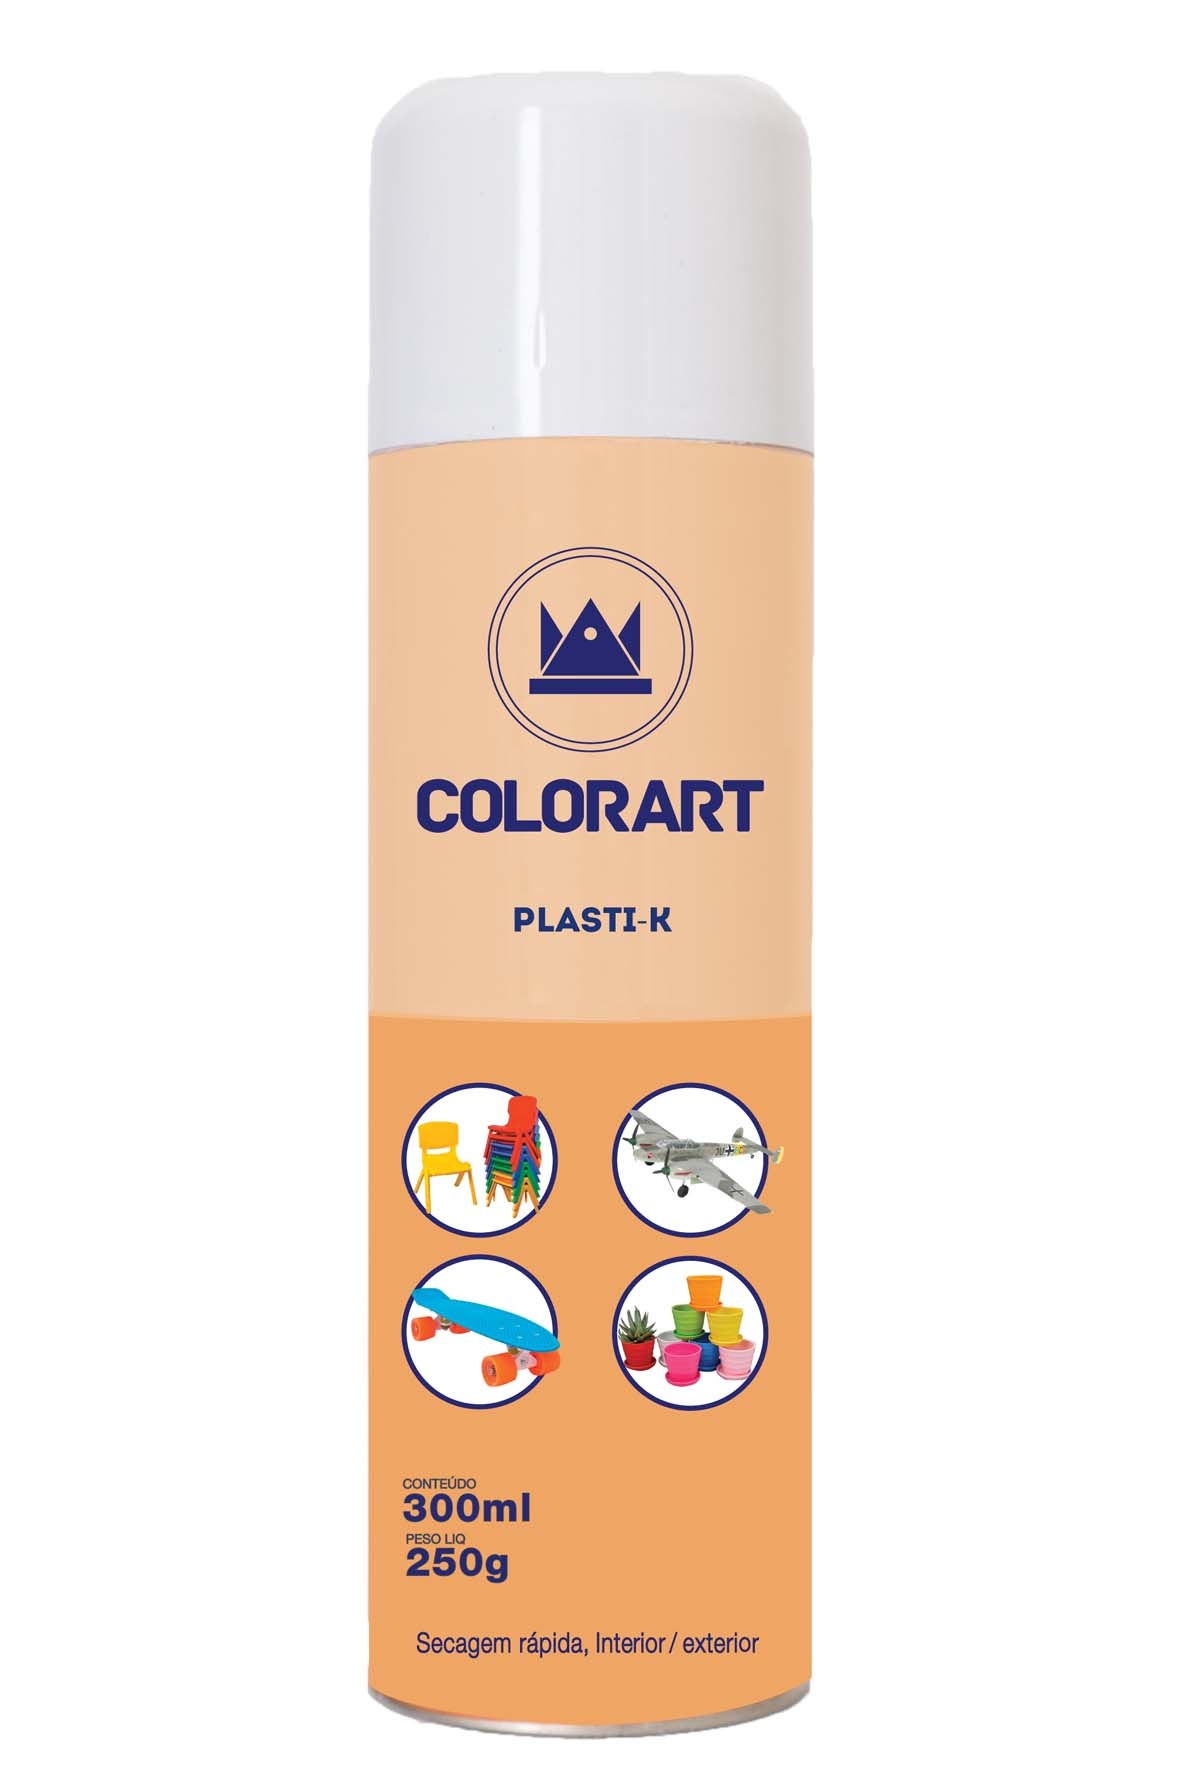 SPRAY PLASTIK COLORART PRETO E BRANCO